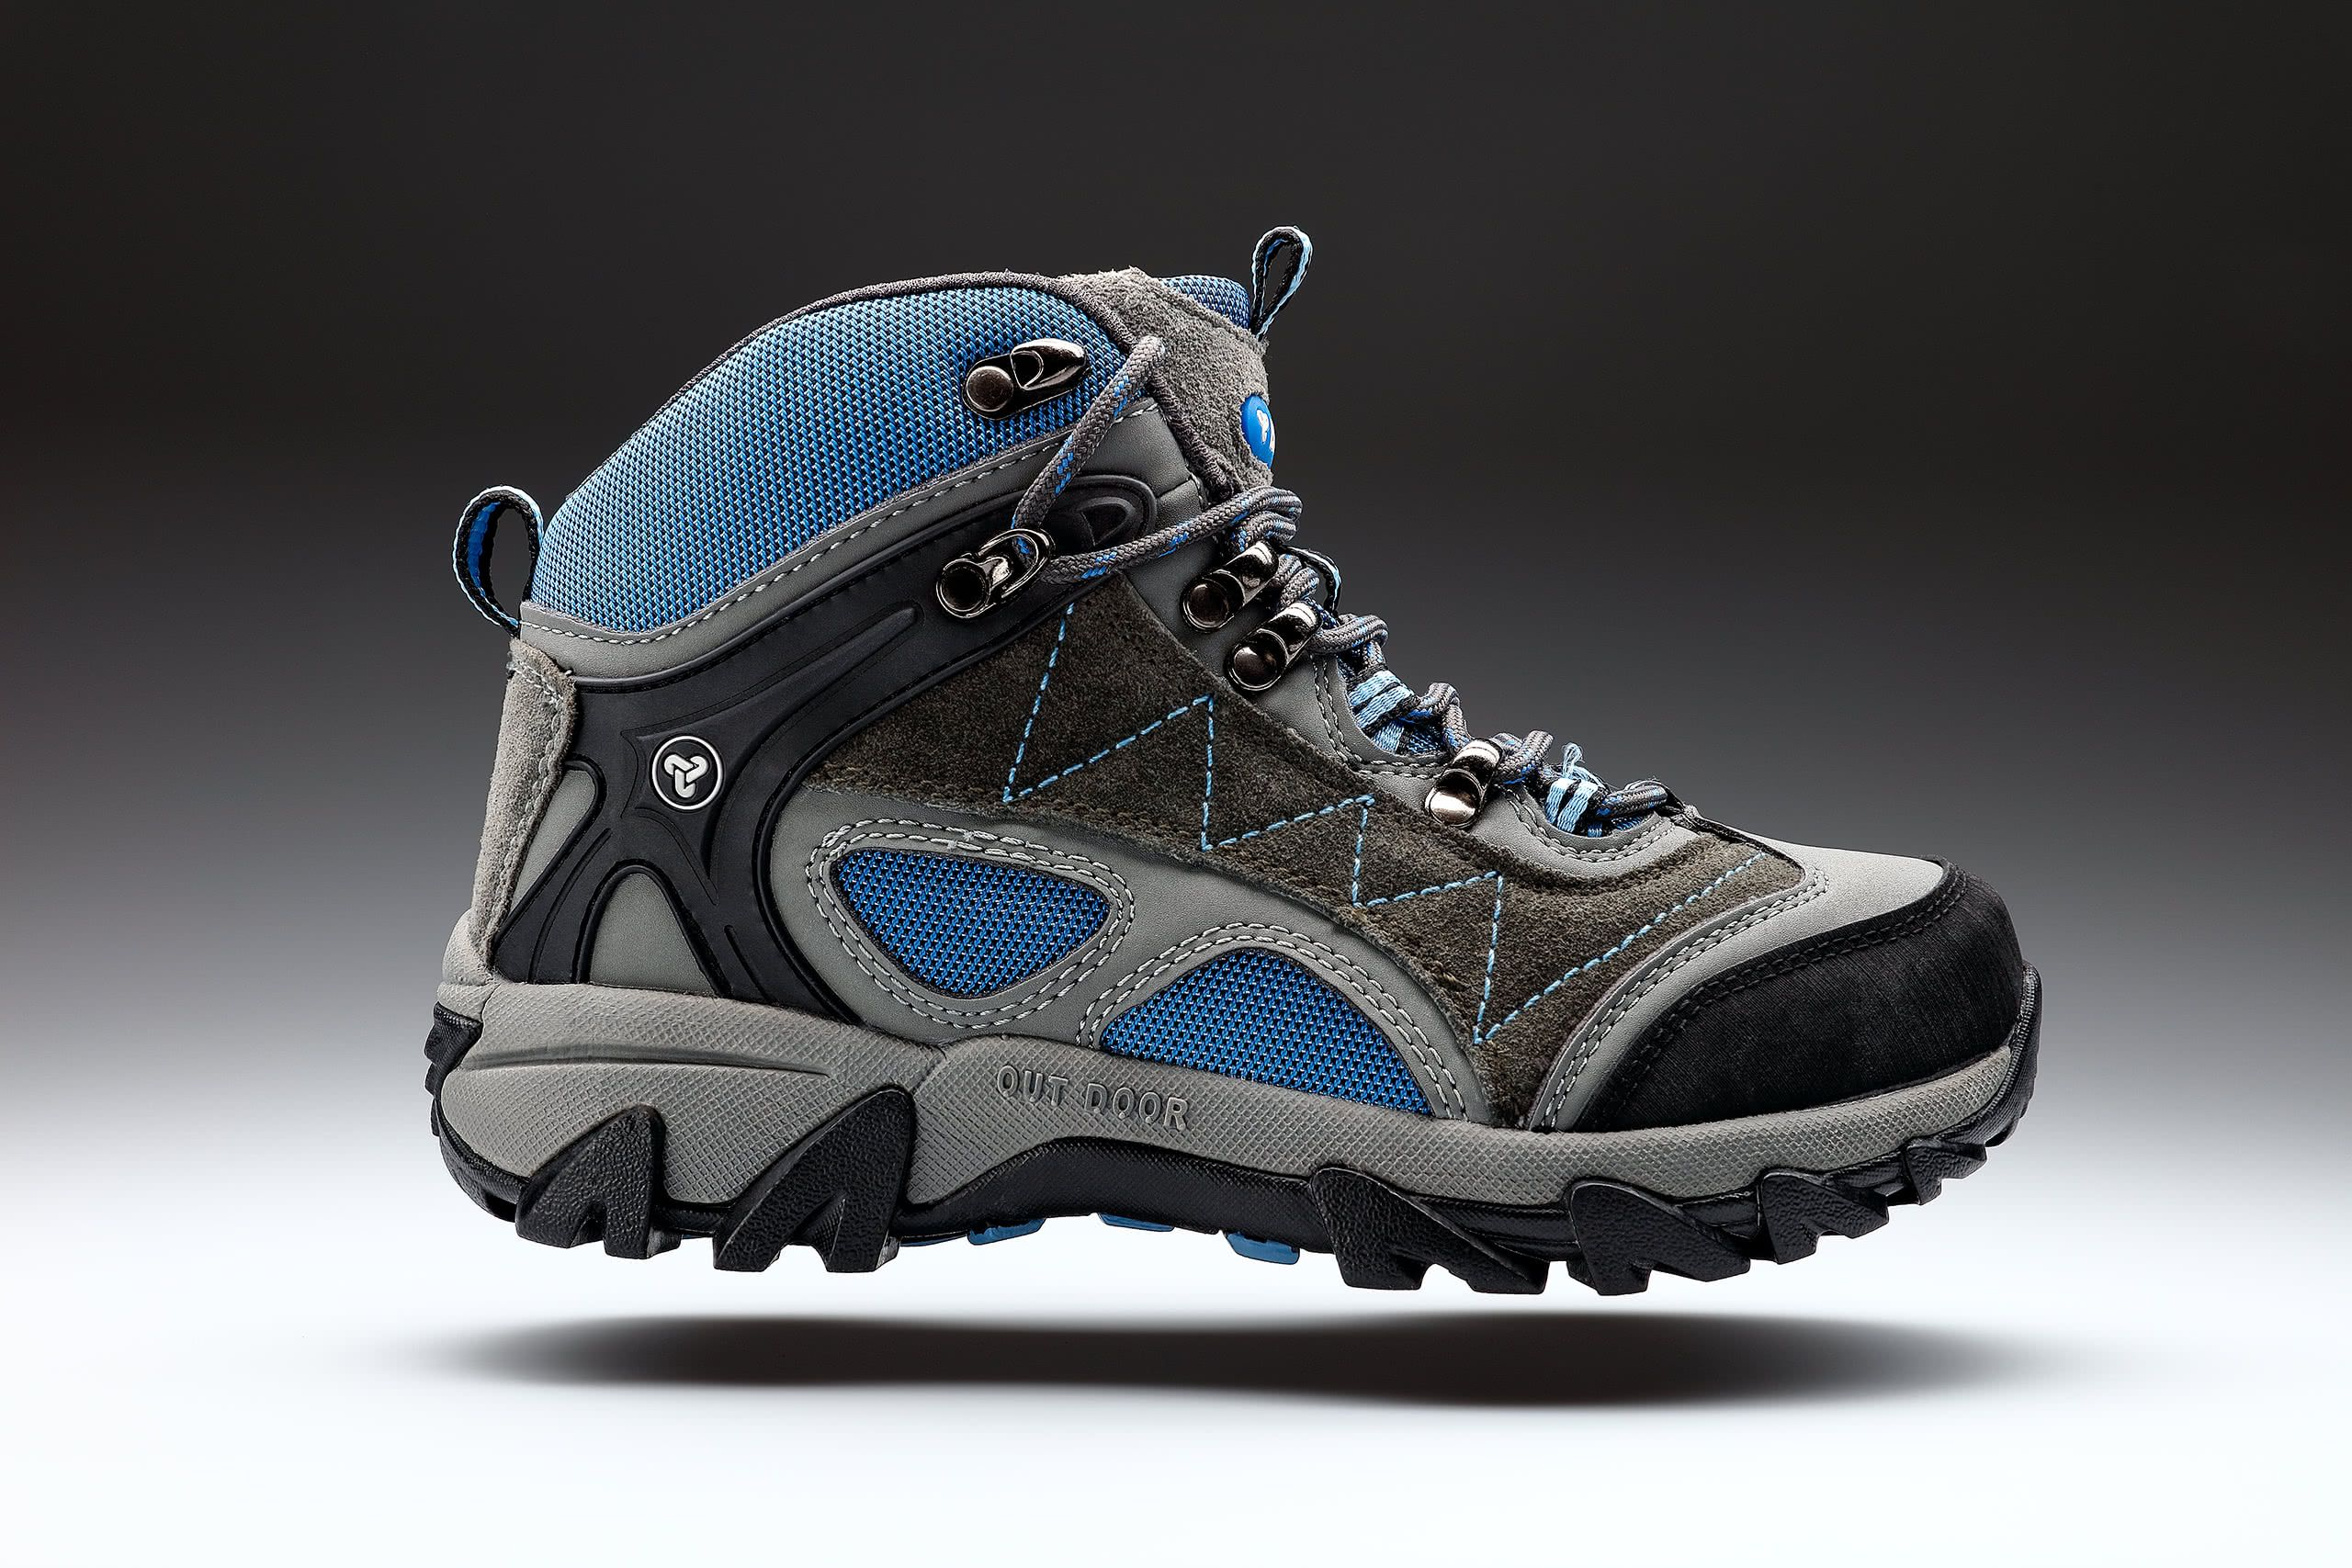 hiking boots product photography